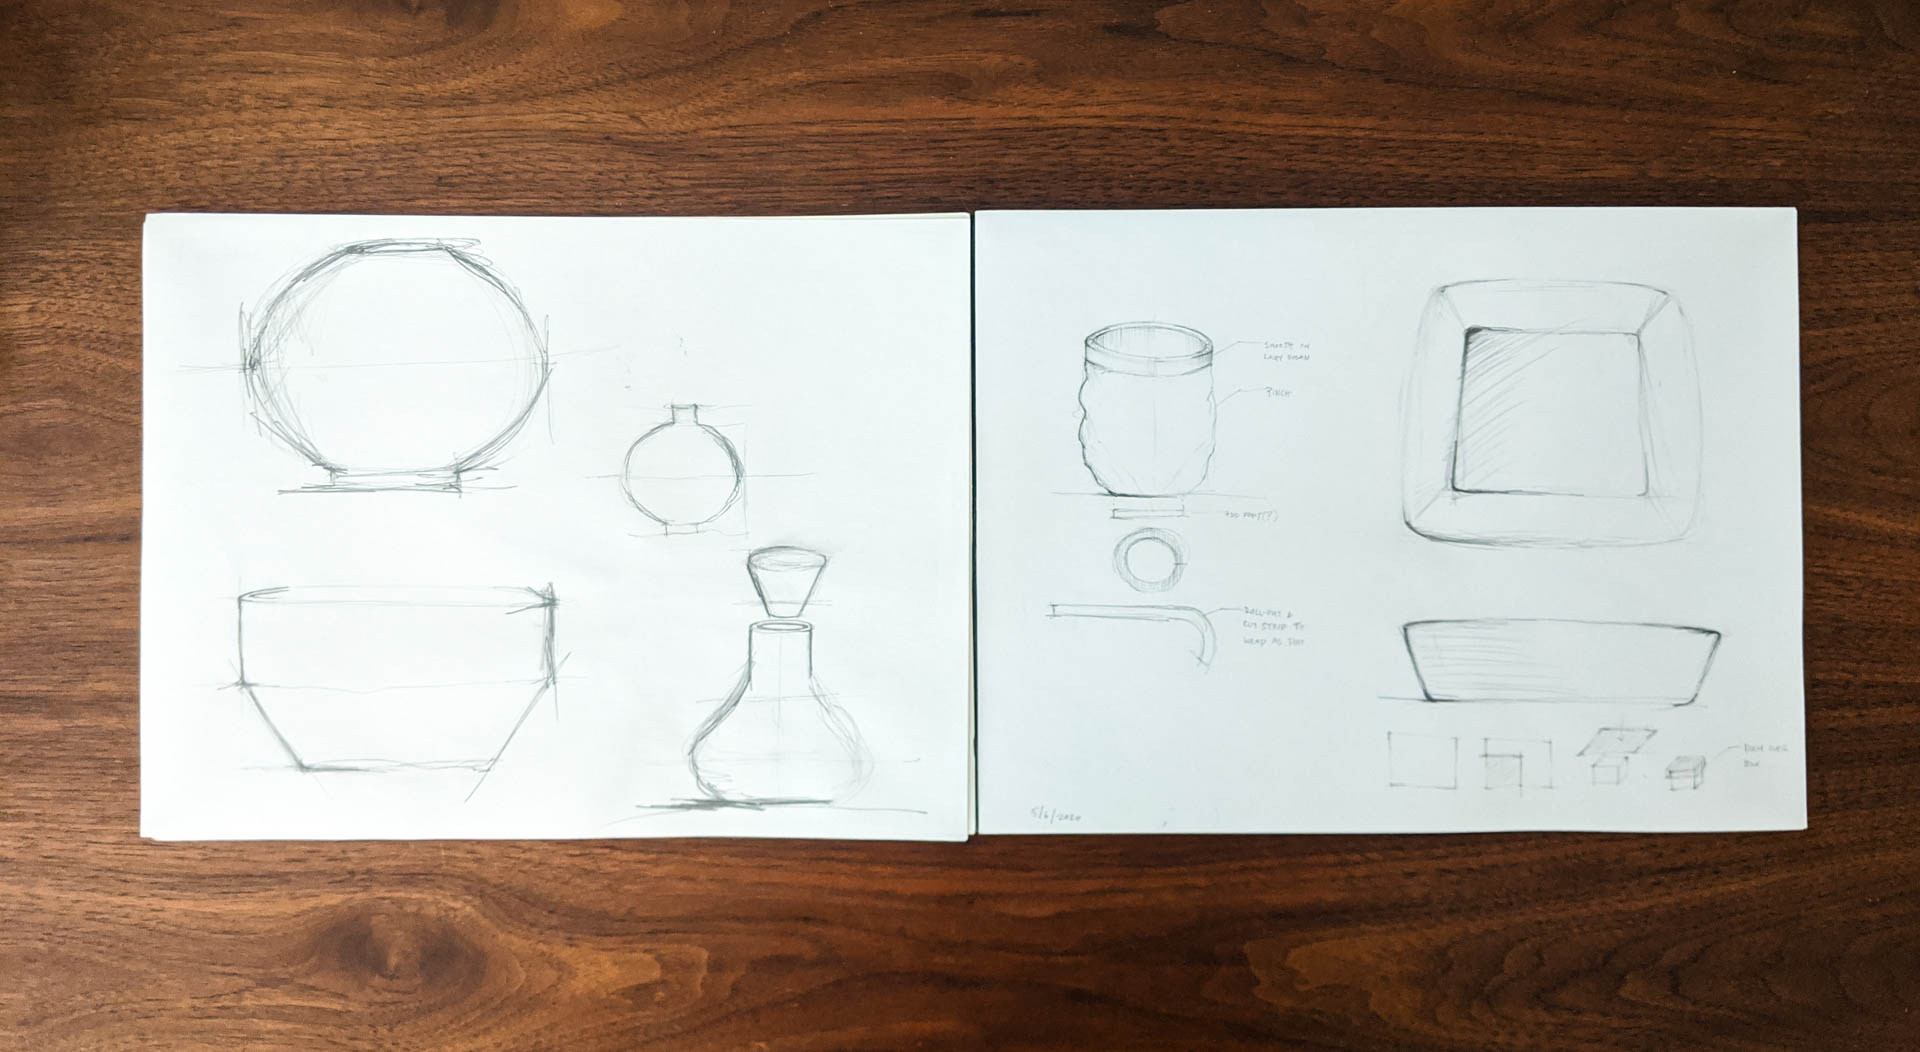 Forms / Squared Bowl Process